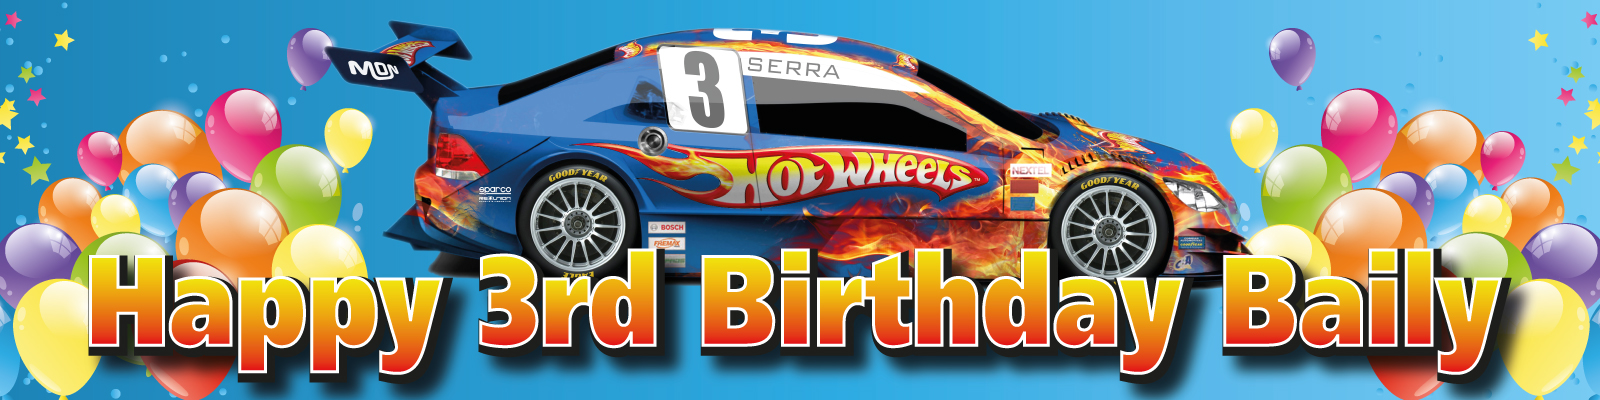 hot-wheels-birthday-banner.jpg